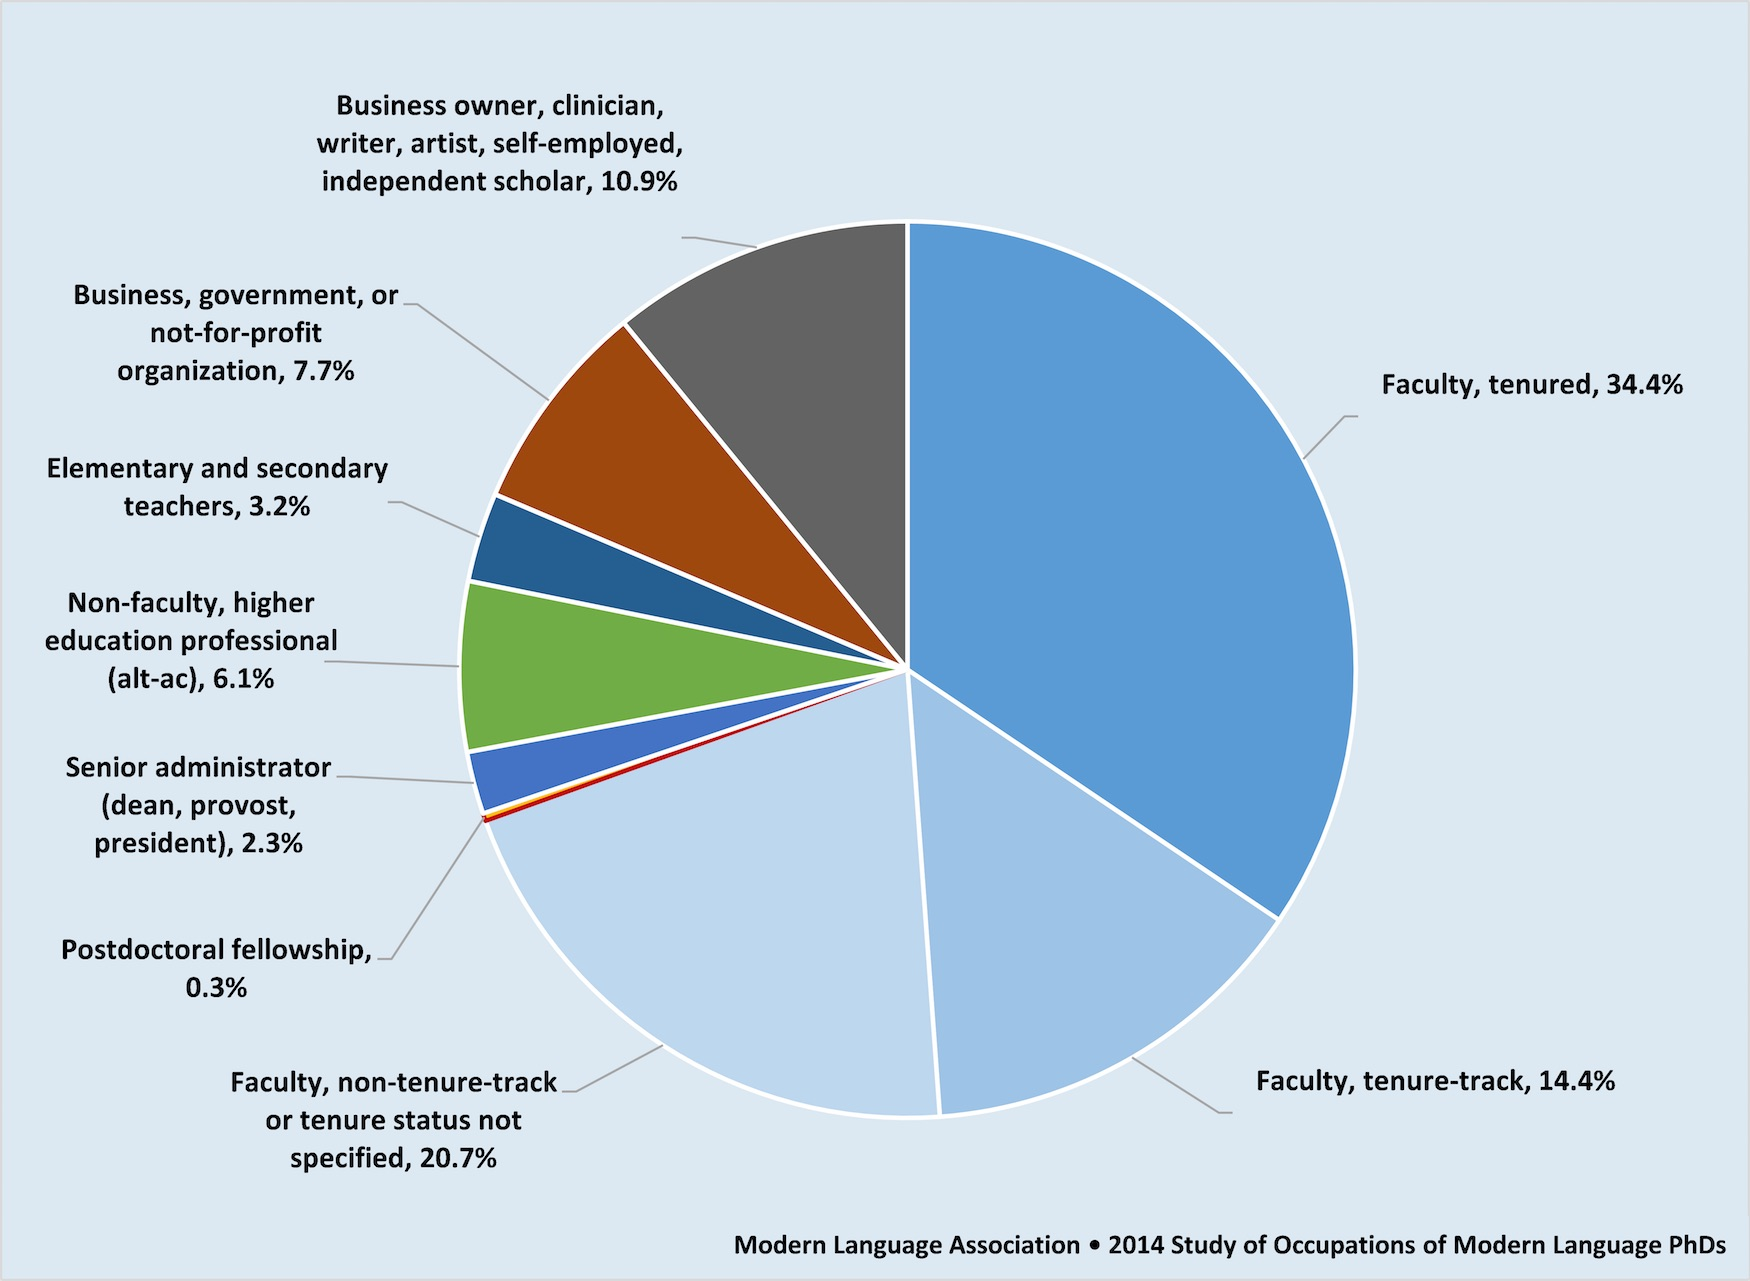 """Fig. 6. """"Occupations in 2014 of a Random Sample of Individuals Who Received a PhD in Modern Languages, 1996–2011"""" (Office of Research, MLA, 2014; unpublished data file). Basis for percentages: 1,969 PhDs who received their terminal degree from a university in the United States and who were employed and residing in the United States at the time of data collection in 2013–14."""